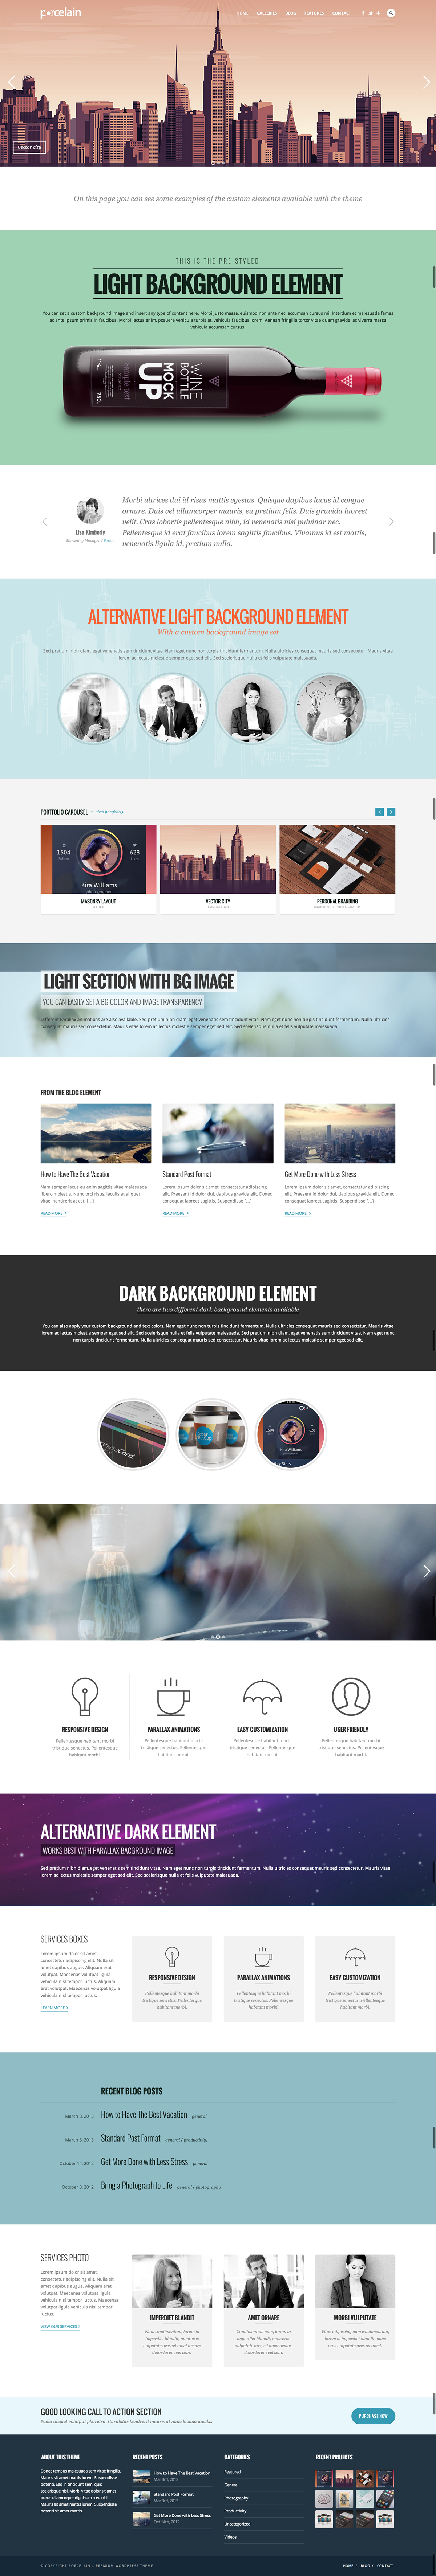 Porcelain - Responsive Multi-Purpose Theme